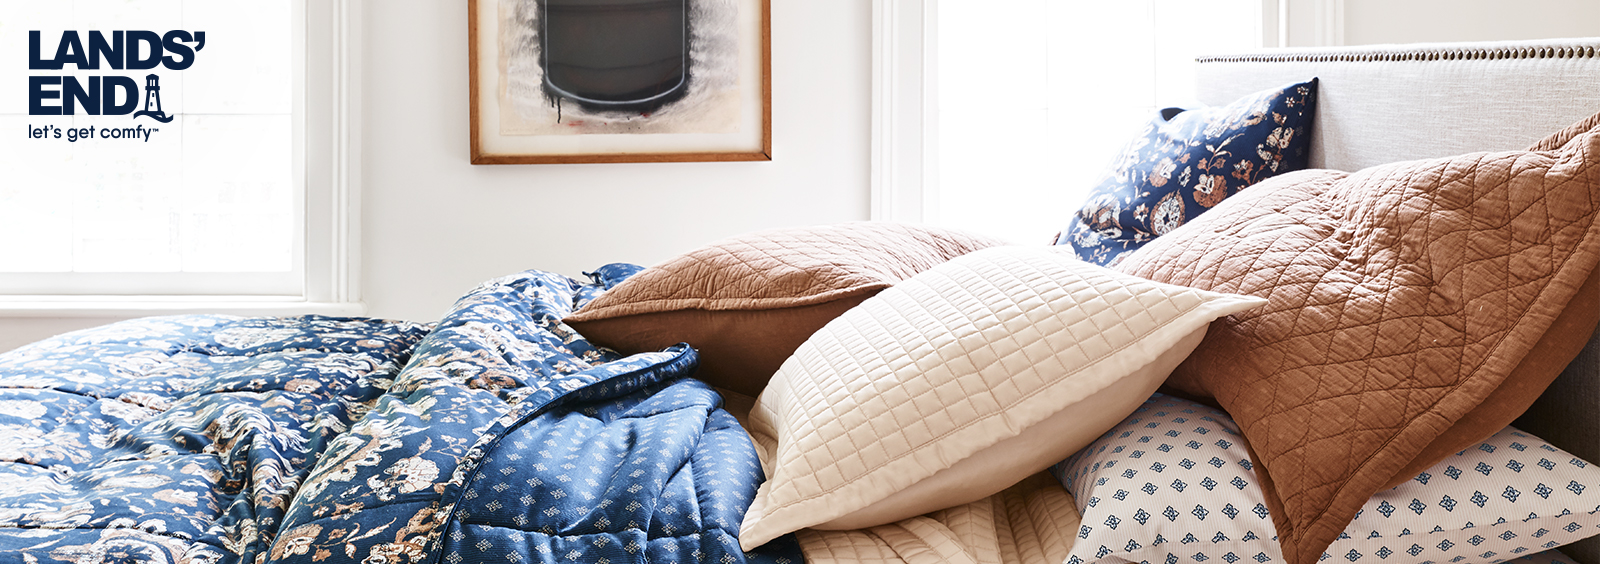 Can You Use a Duvet Cover by Itself?